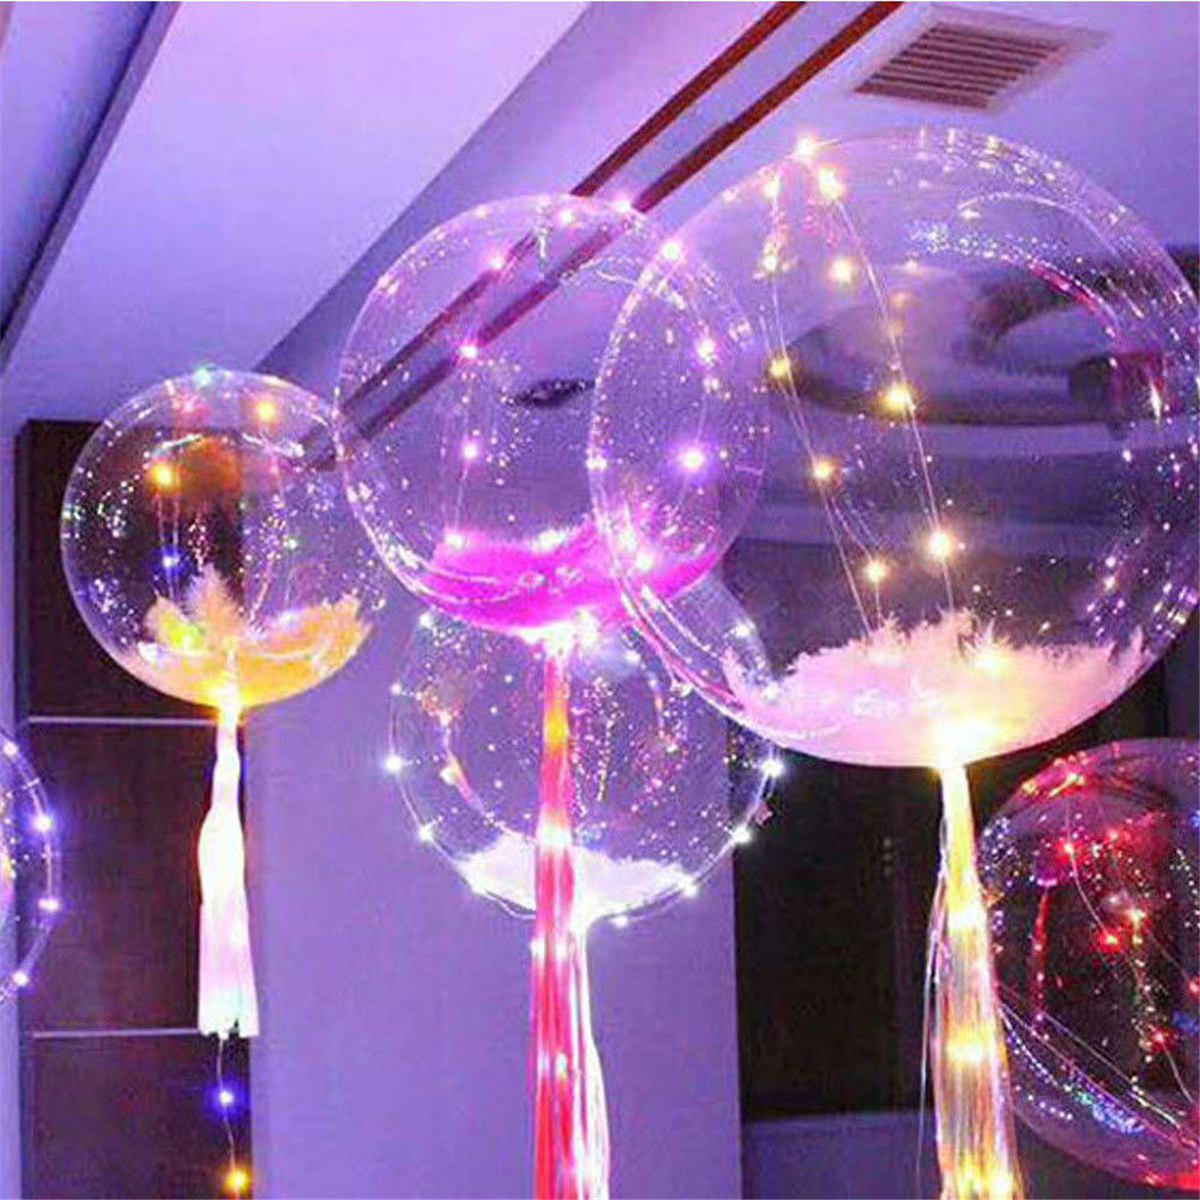 LED Colorful Christmas String Light Transparent Balloon Wedding Party Decor